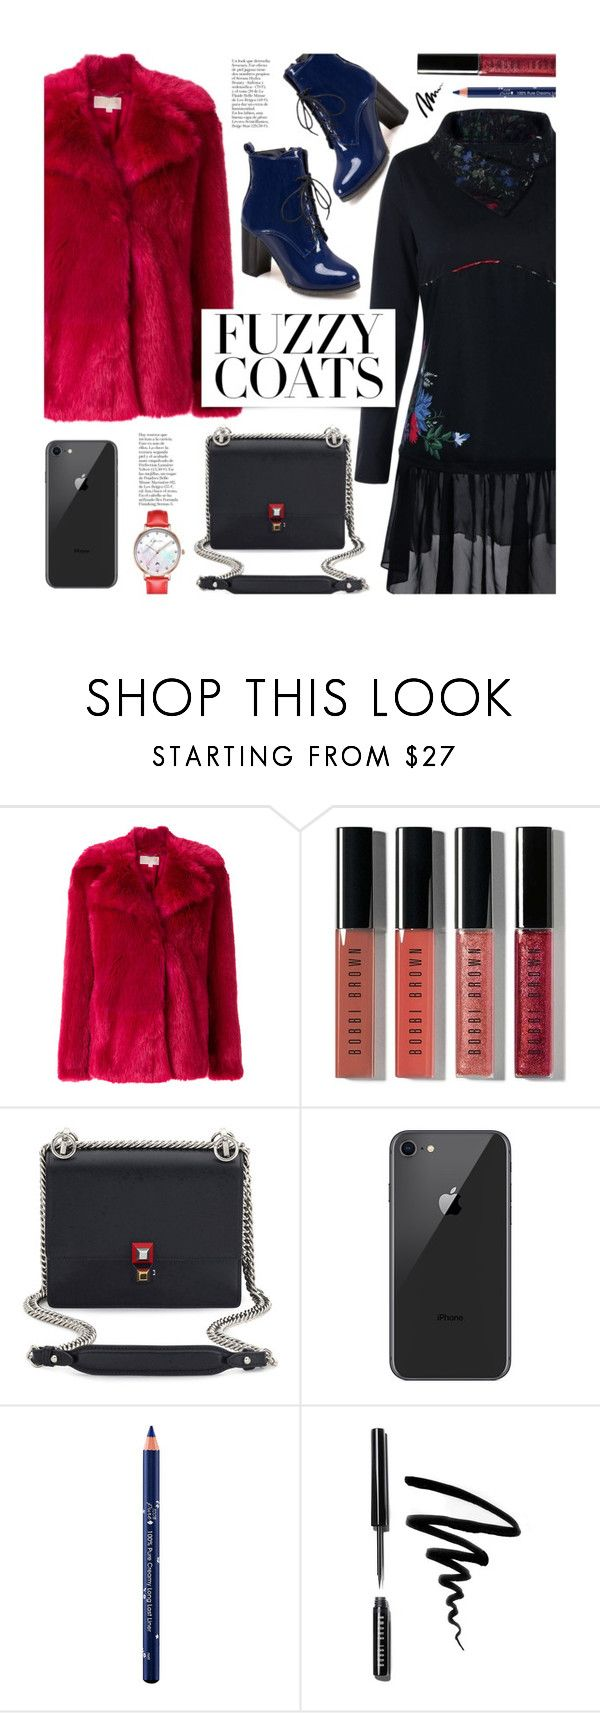 """Keep it Cozy: Fuzzy Coats"" by beebeely-look ❤ liked on Polyvore featuring MICHAEL Michael Kors, Bobbi Brown Cosmetics, Fendi, 100% Pure, StreetStyle, dresses, sammydress, fauxfur and fuzzycoats"